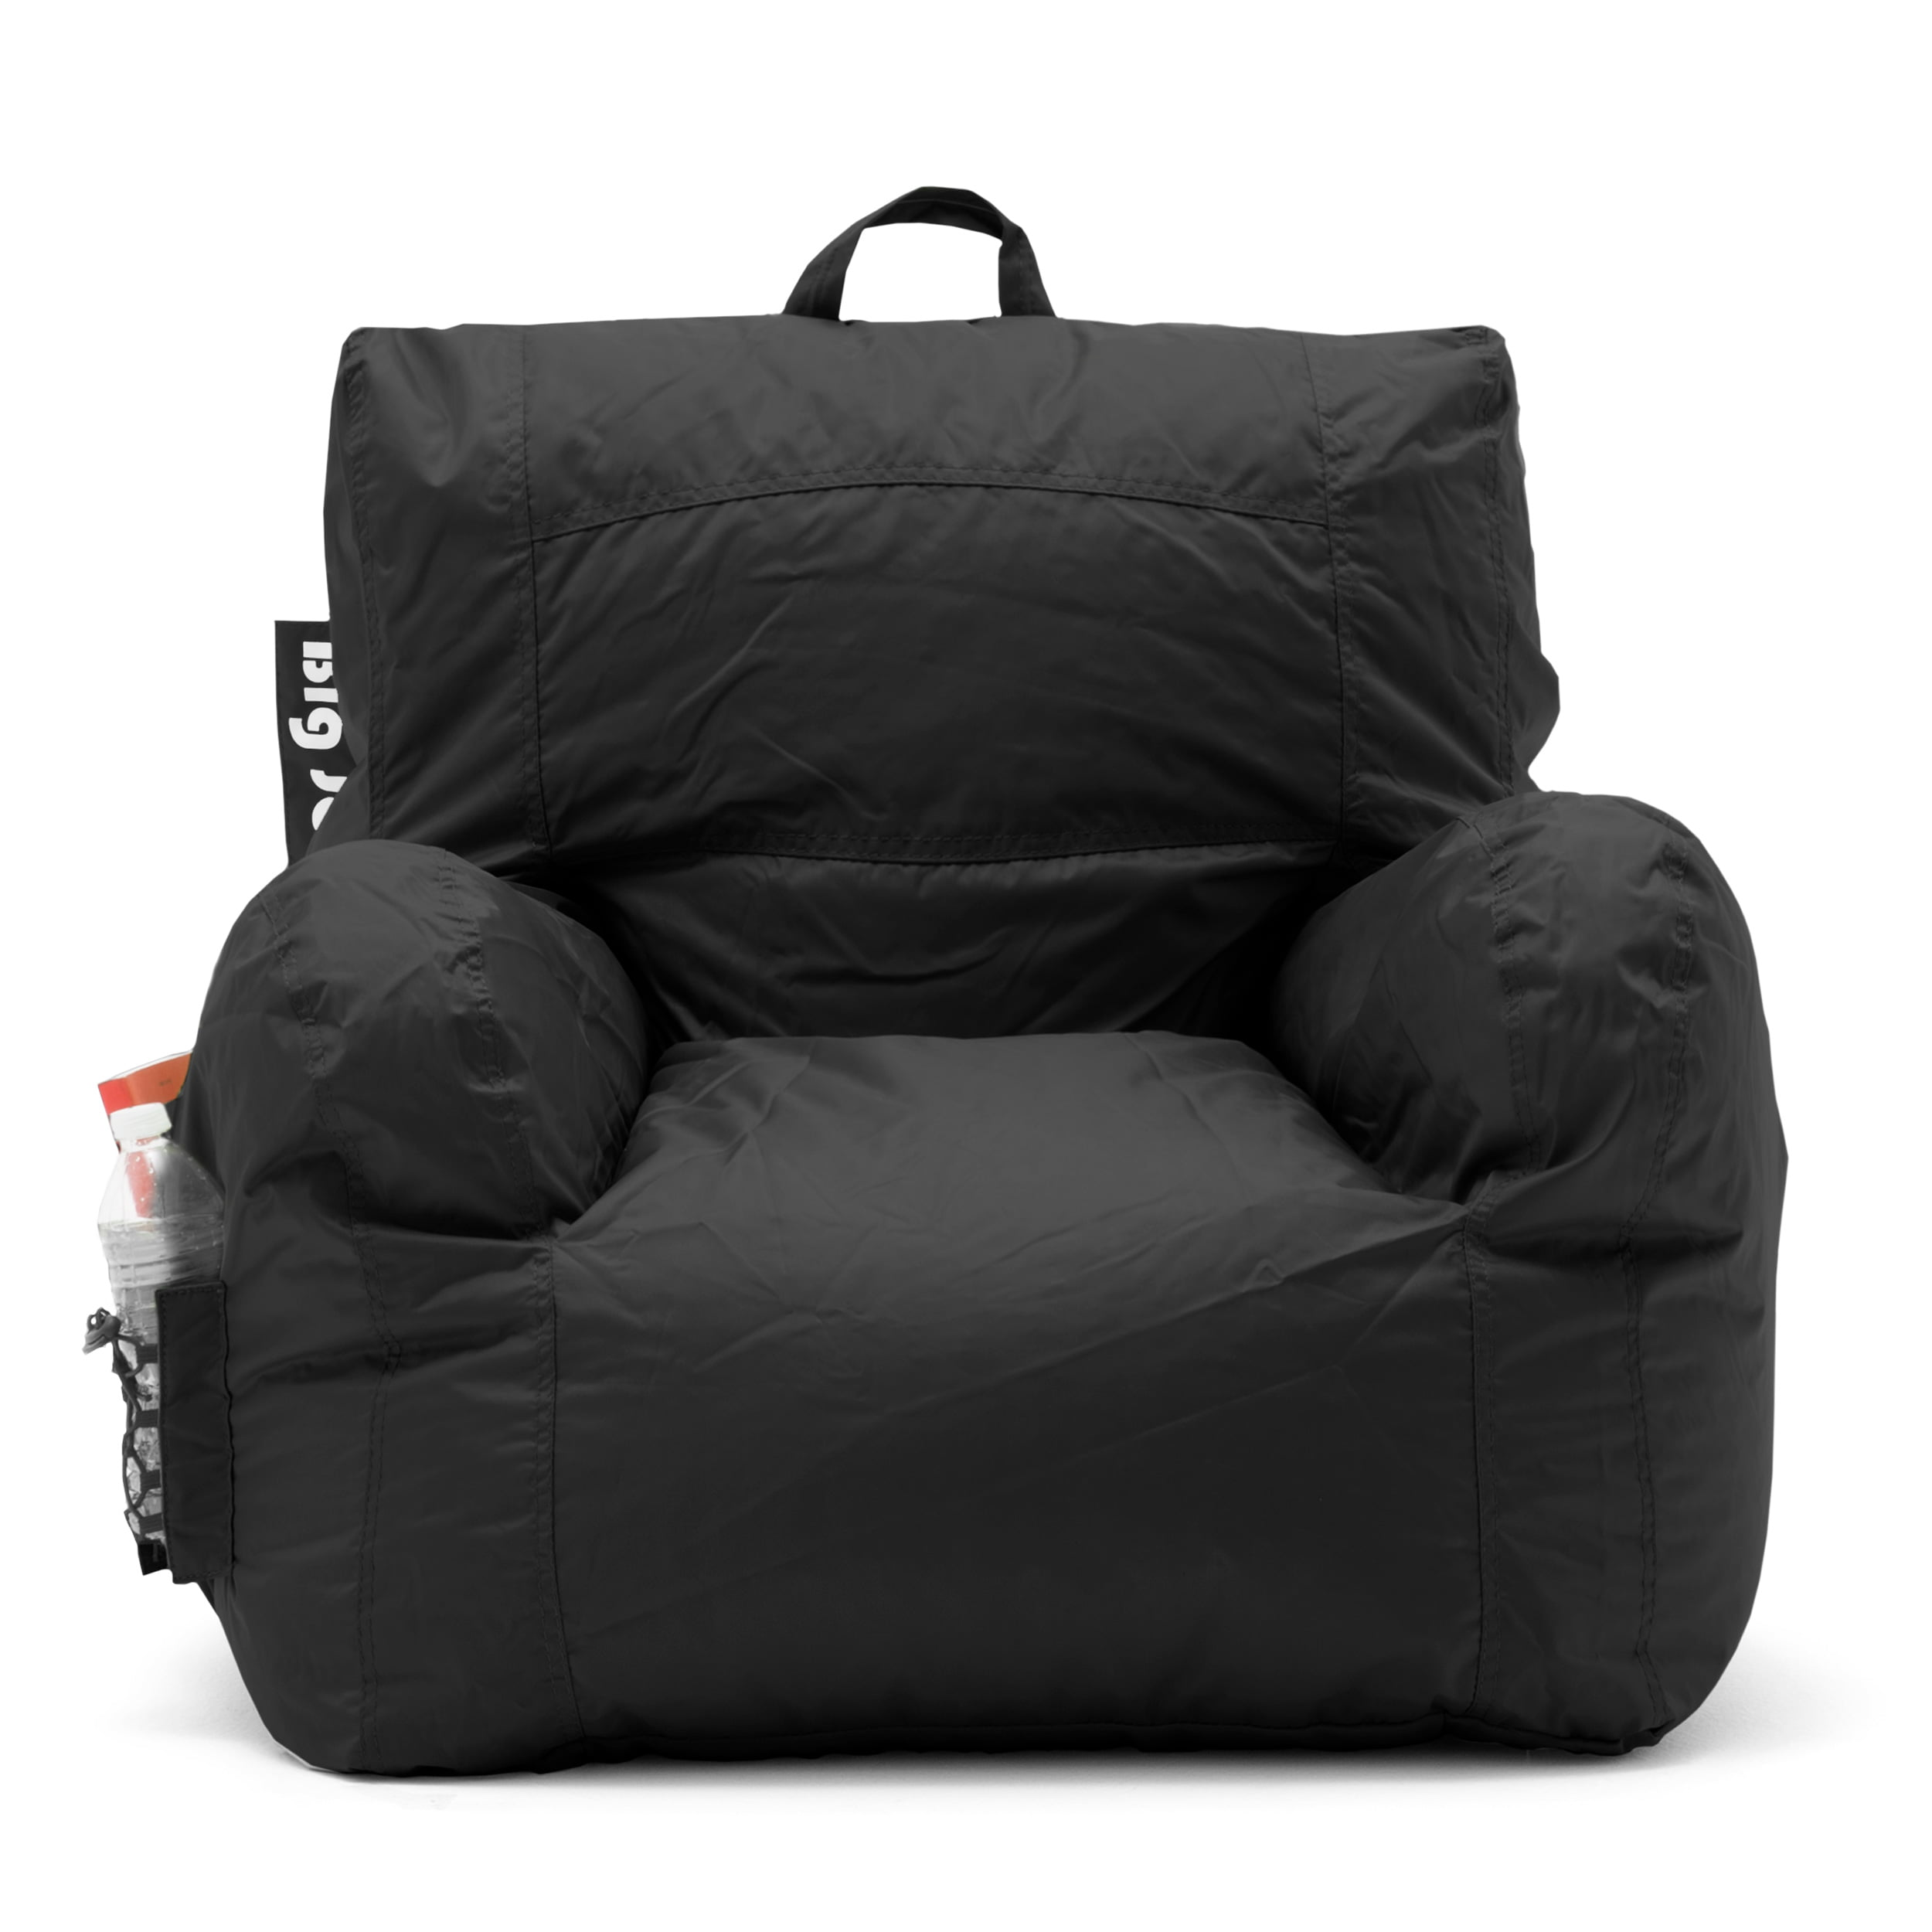 Groovy Big Joe Bean Bag Chair Multiple Colors 33 X 32 X 25 Short Links Chair Design For Home Short Linksinfo